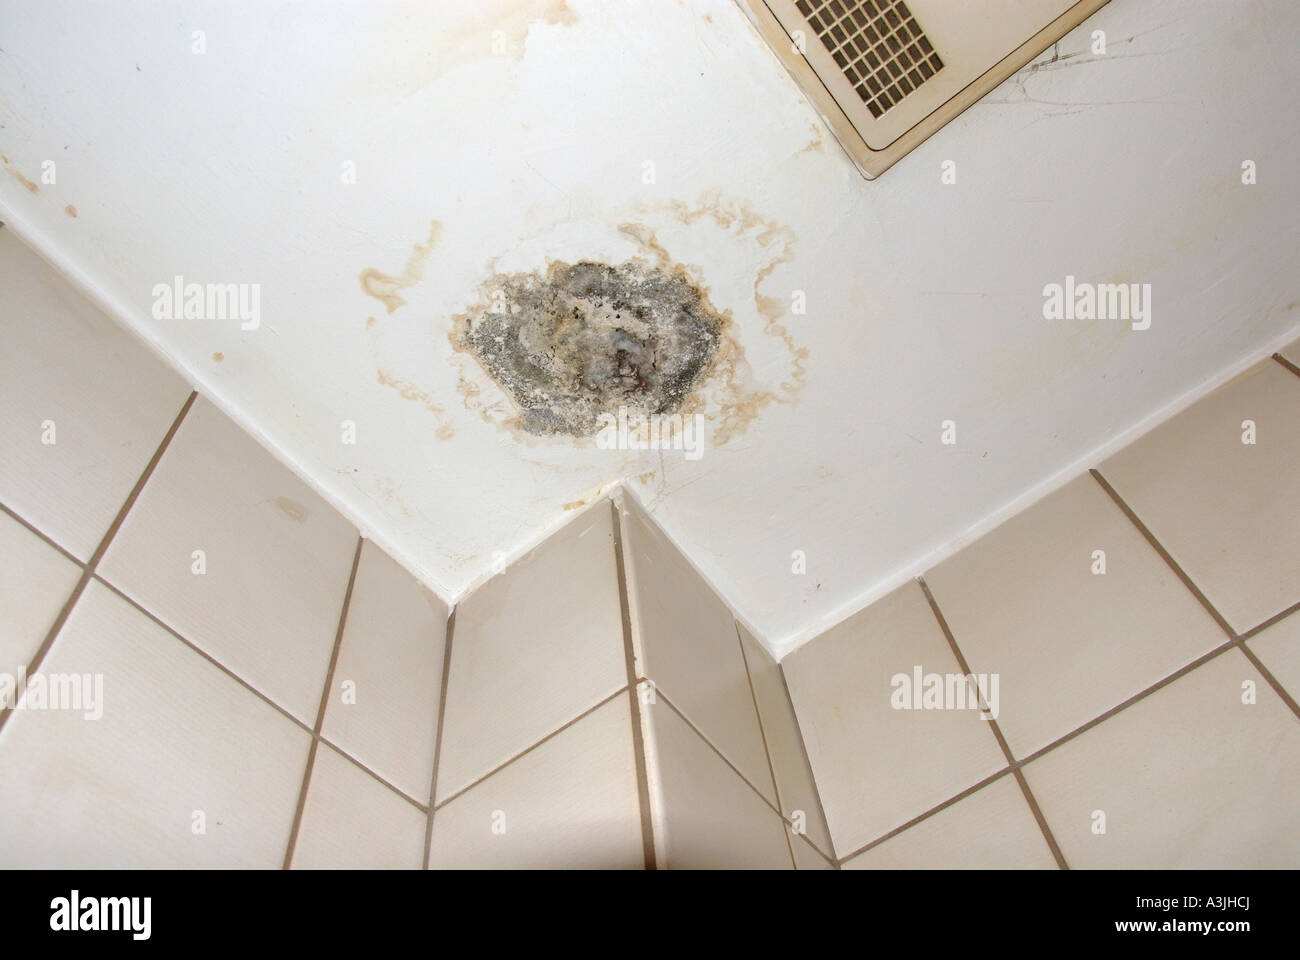 mold on the ceiling in a bathroom. - Stock Image